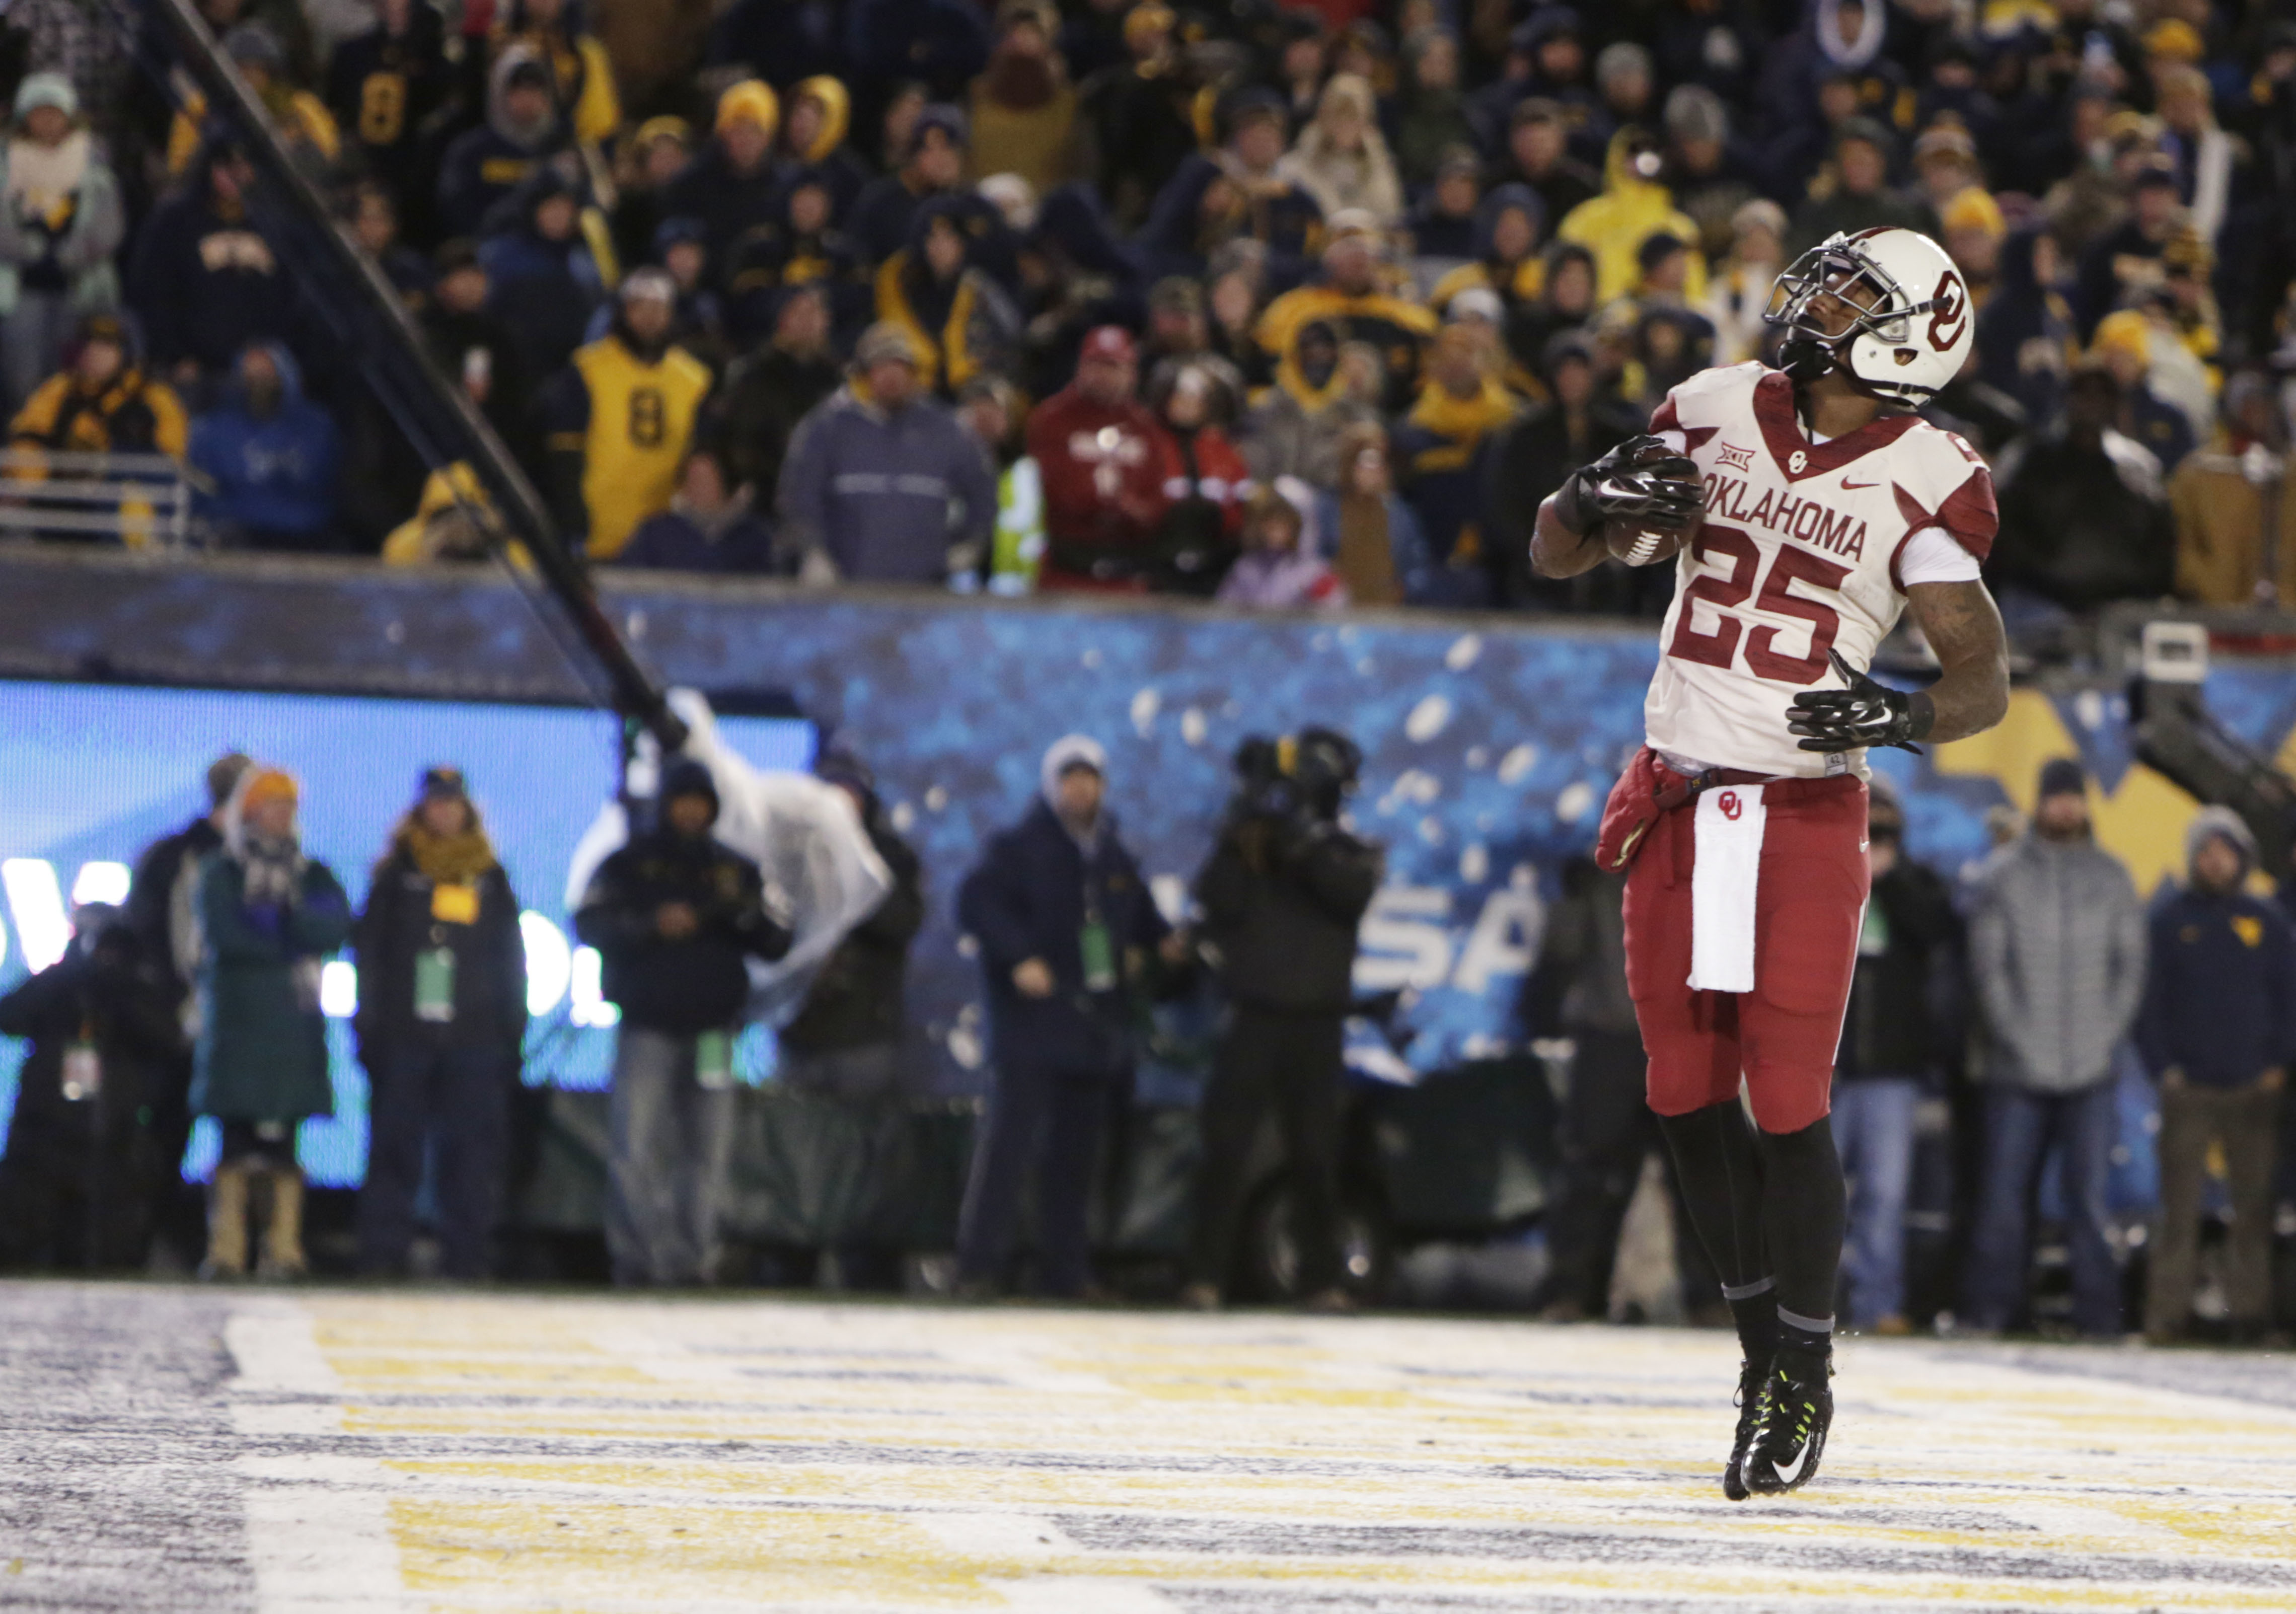 Oklahoma running back Joe Mixon looks up after his touchdown during the first half of an NCAA college football game against West Virginia, Saturday, Nov. 19, 2016, in Morgantown, W.Va. Oklahoma won 56-28, (AP Photo/Raymond Thompson)